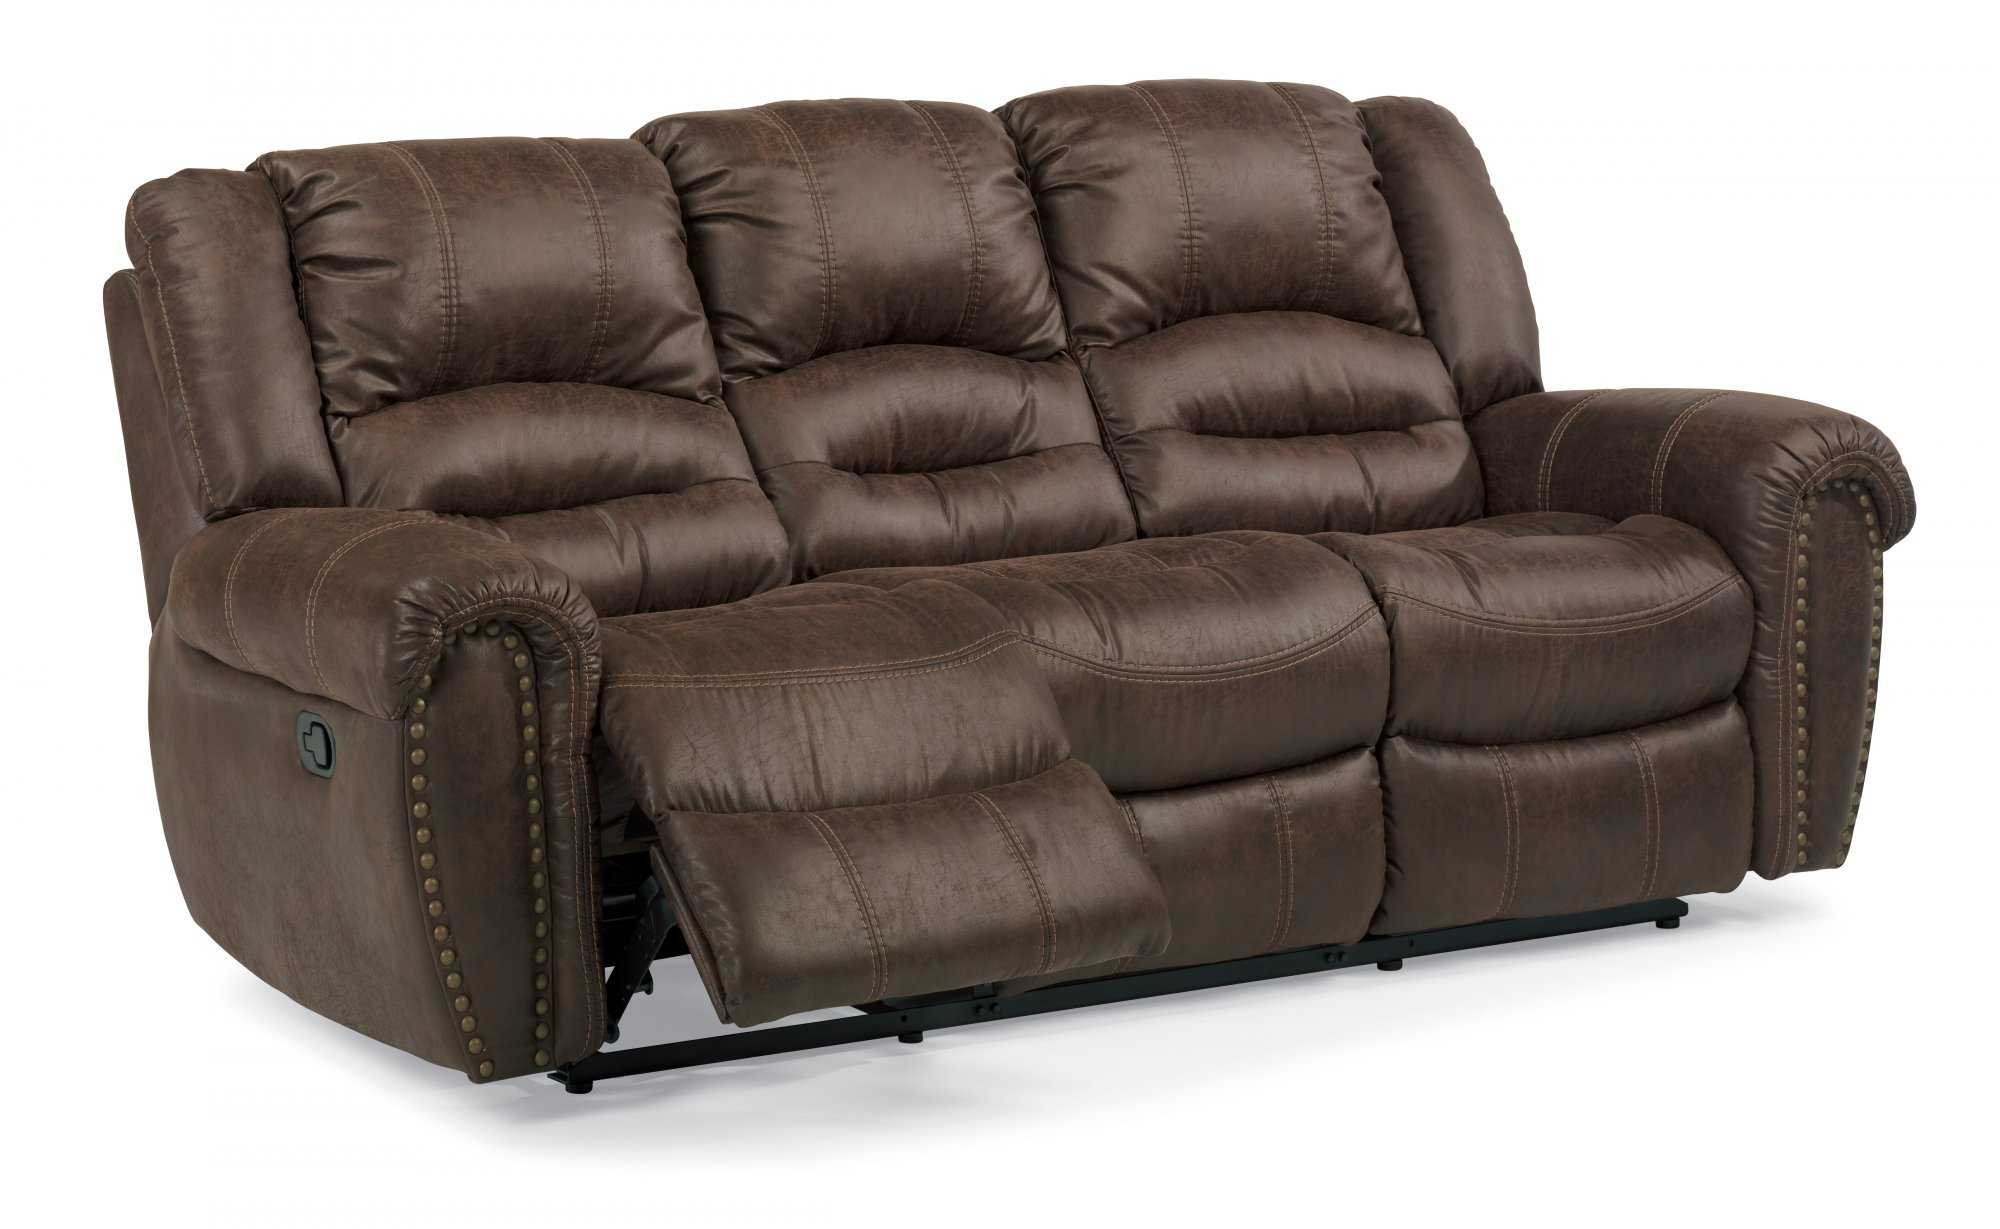 Fabric Reclining Sofa  sc 1 st  Flexsteel : leather and fabric recliner - islam-shia.org